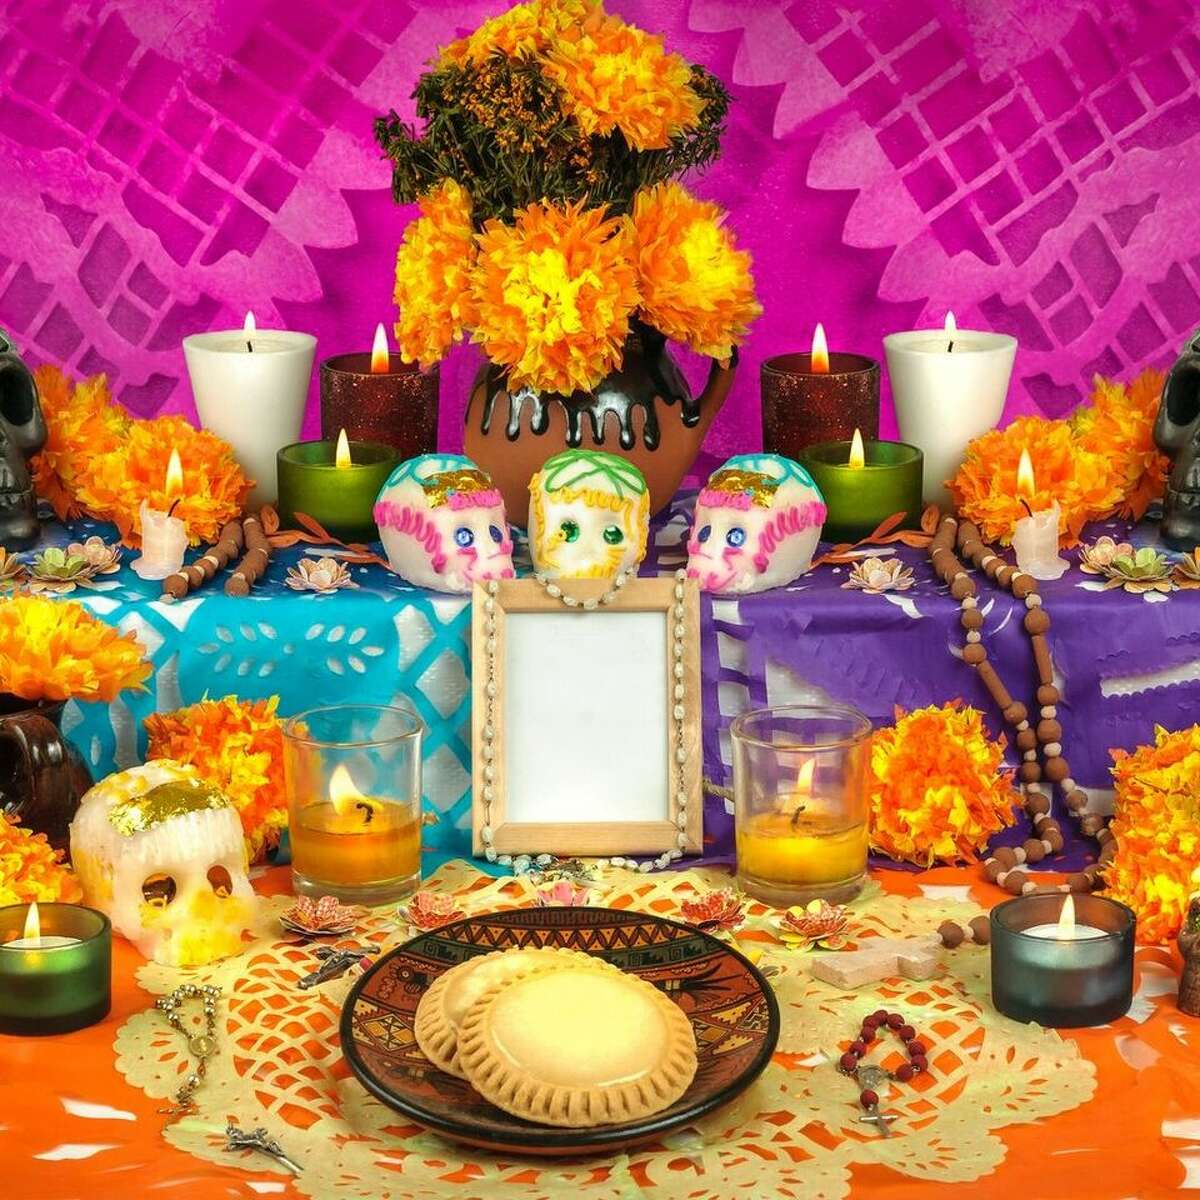 This year's Magnolia Park Dia de los Muertos celebration will take shape as a short film highlighting different families in Magnolia Park due to the ongoing pandemic.